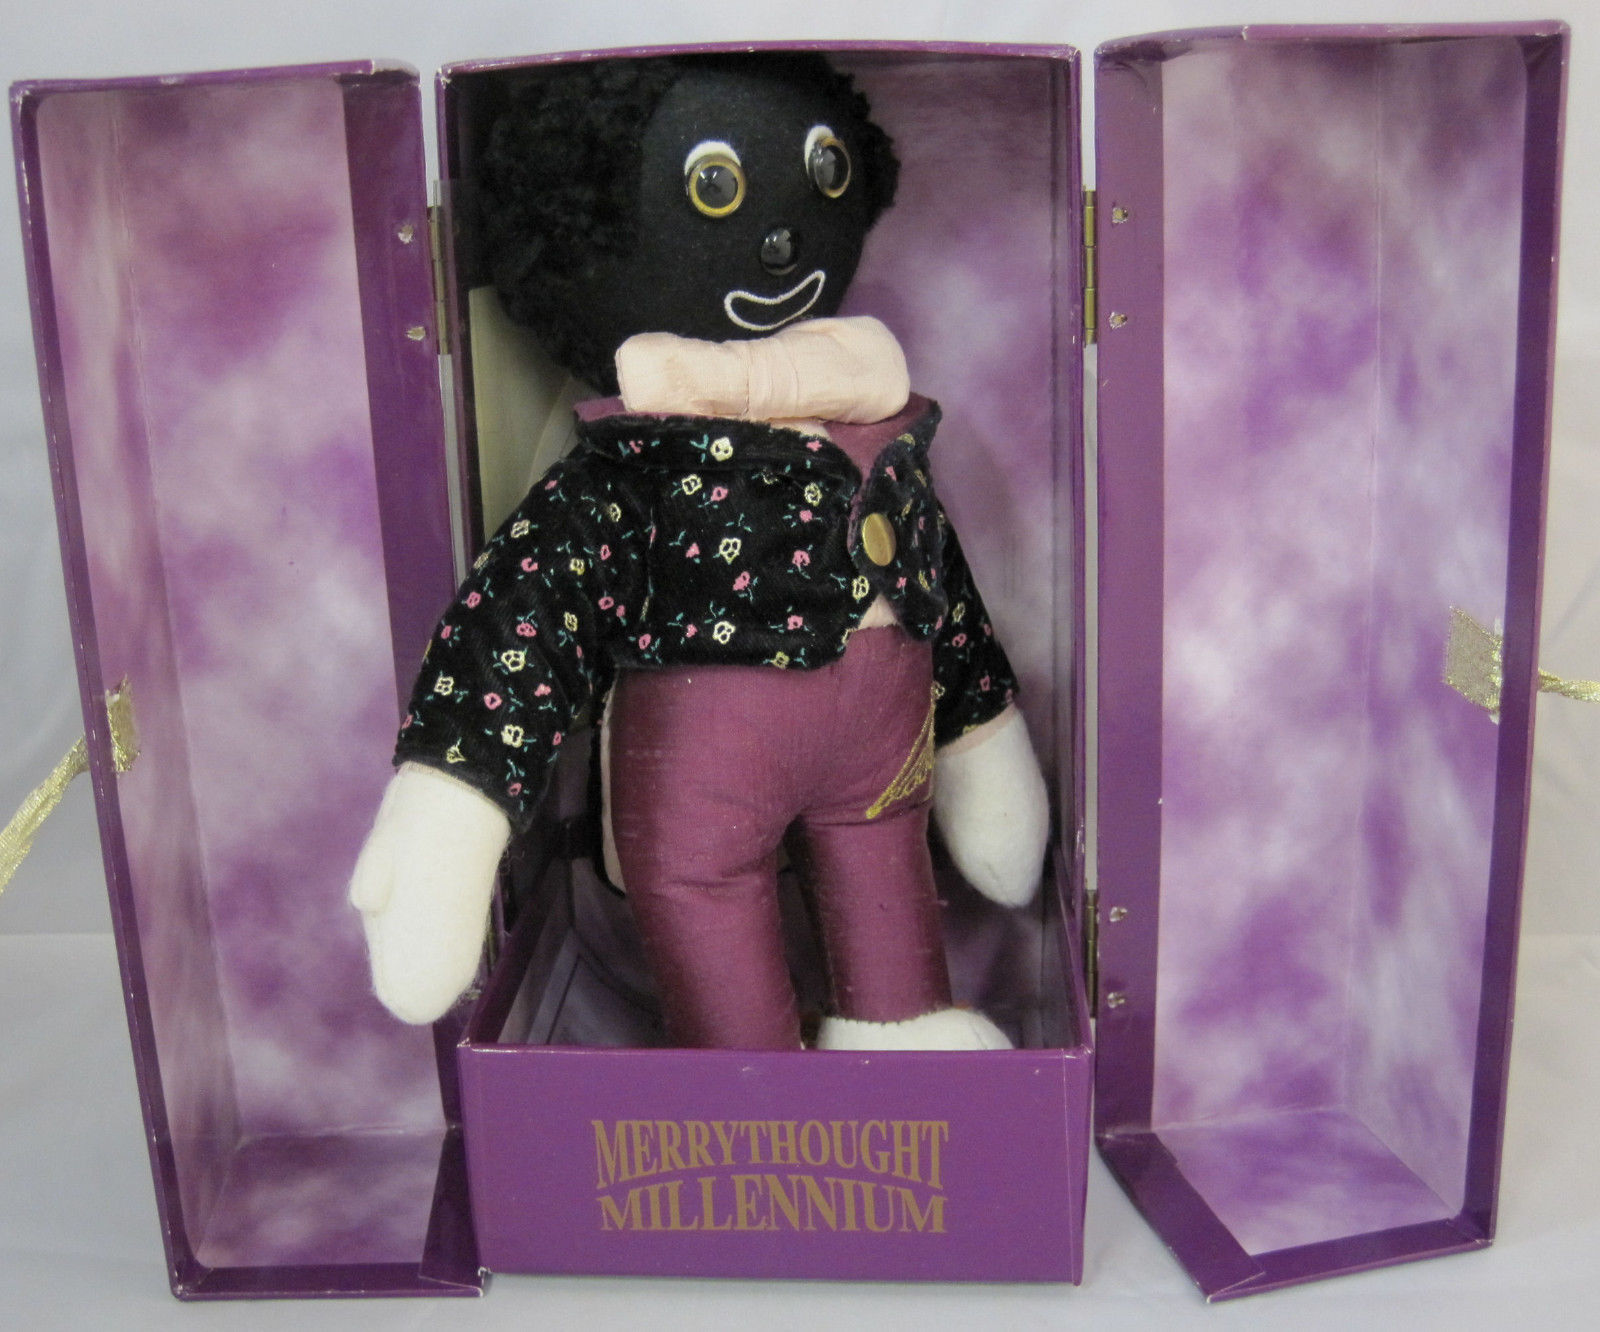 Primary image for Merrythought Millennium Golly Golliwogg Limited Edition With Tags & Box